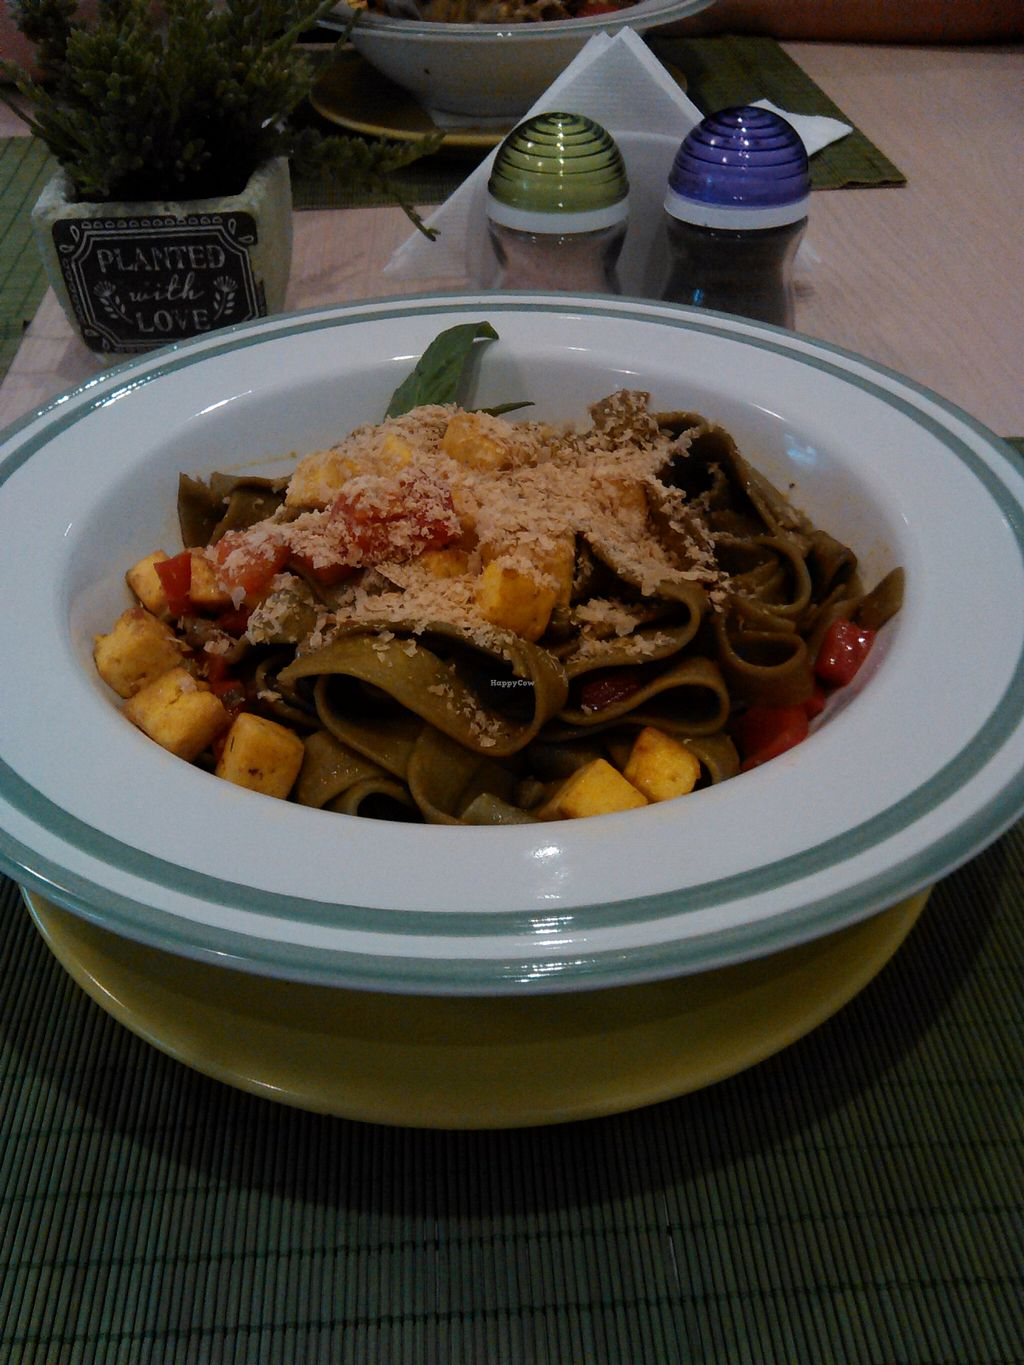 """Photo of BIOFresh  by <a href=""""/members/profile/alexandra_vegan"""">alexandra_vegan</a> <br/>Spinach pasta with tofu. One of my favourites <br/> March 7, 2016  - <a href='/contact/abuse/image/62092/139198'>Report</a>"""